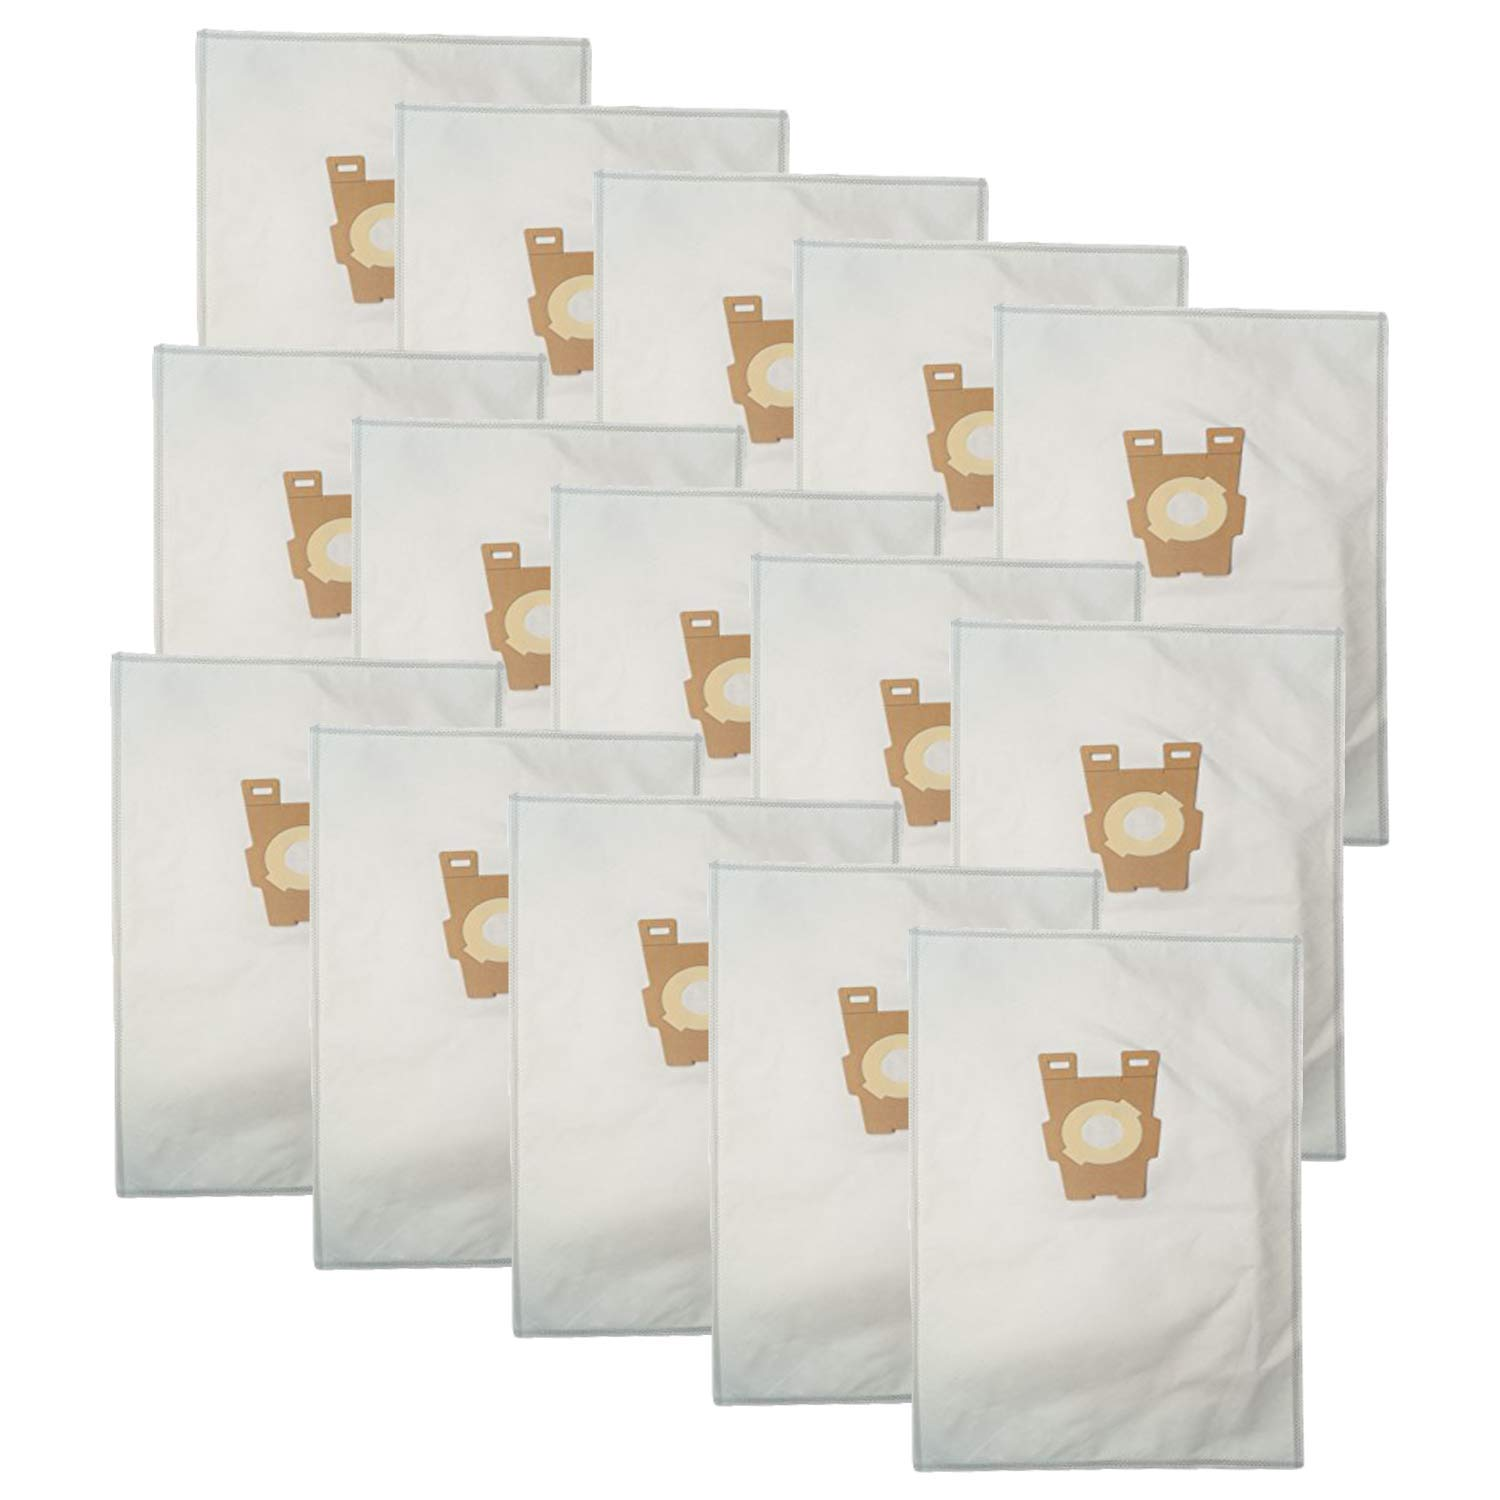 ZVac 15Pk Compatible Cloth Vacuum Bags Replacement for Kirby Vacuum Bags Style F. Fits All Ultimate G Diamond Edition, Ultimate G Series, Gsix, Sentria (Year 2009+). Replaces Part# 204808, 204808GW